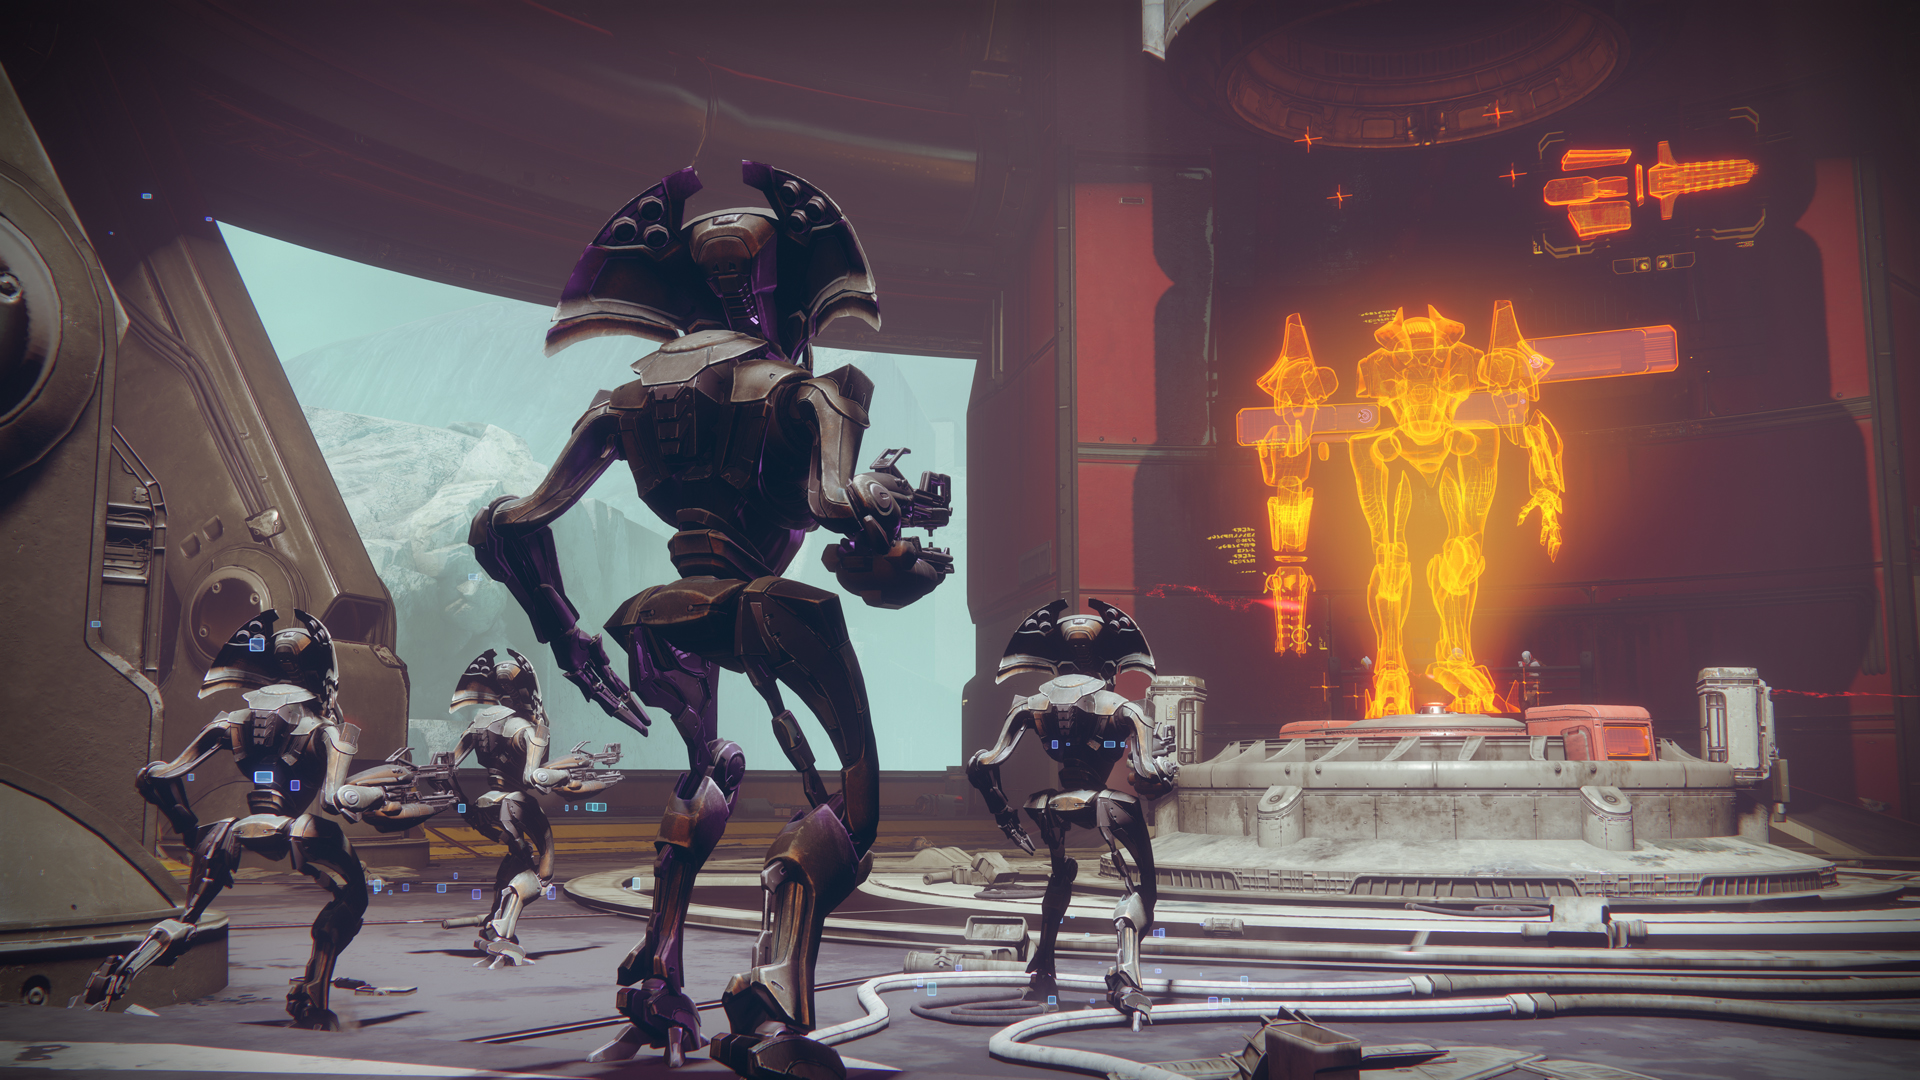 I played Destiny 2 on PC, and now I don't want to go back